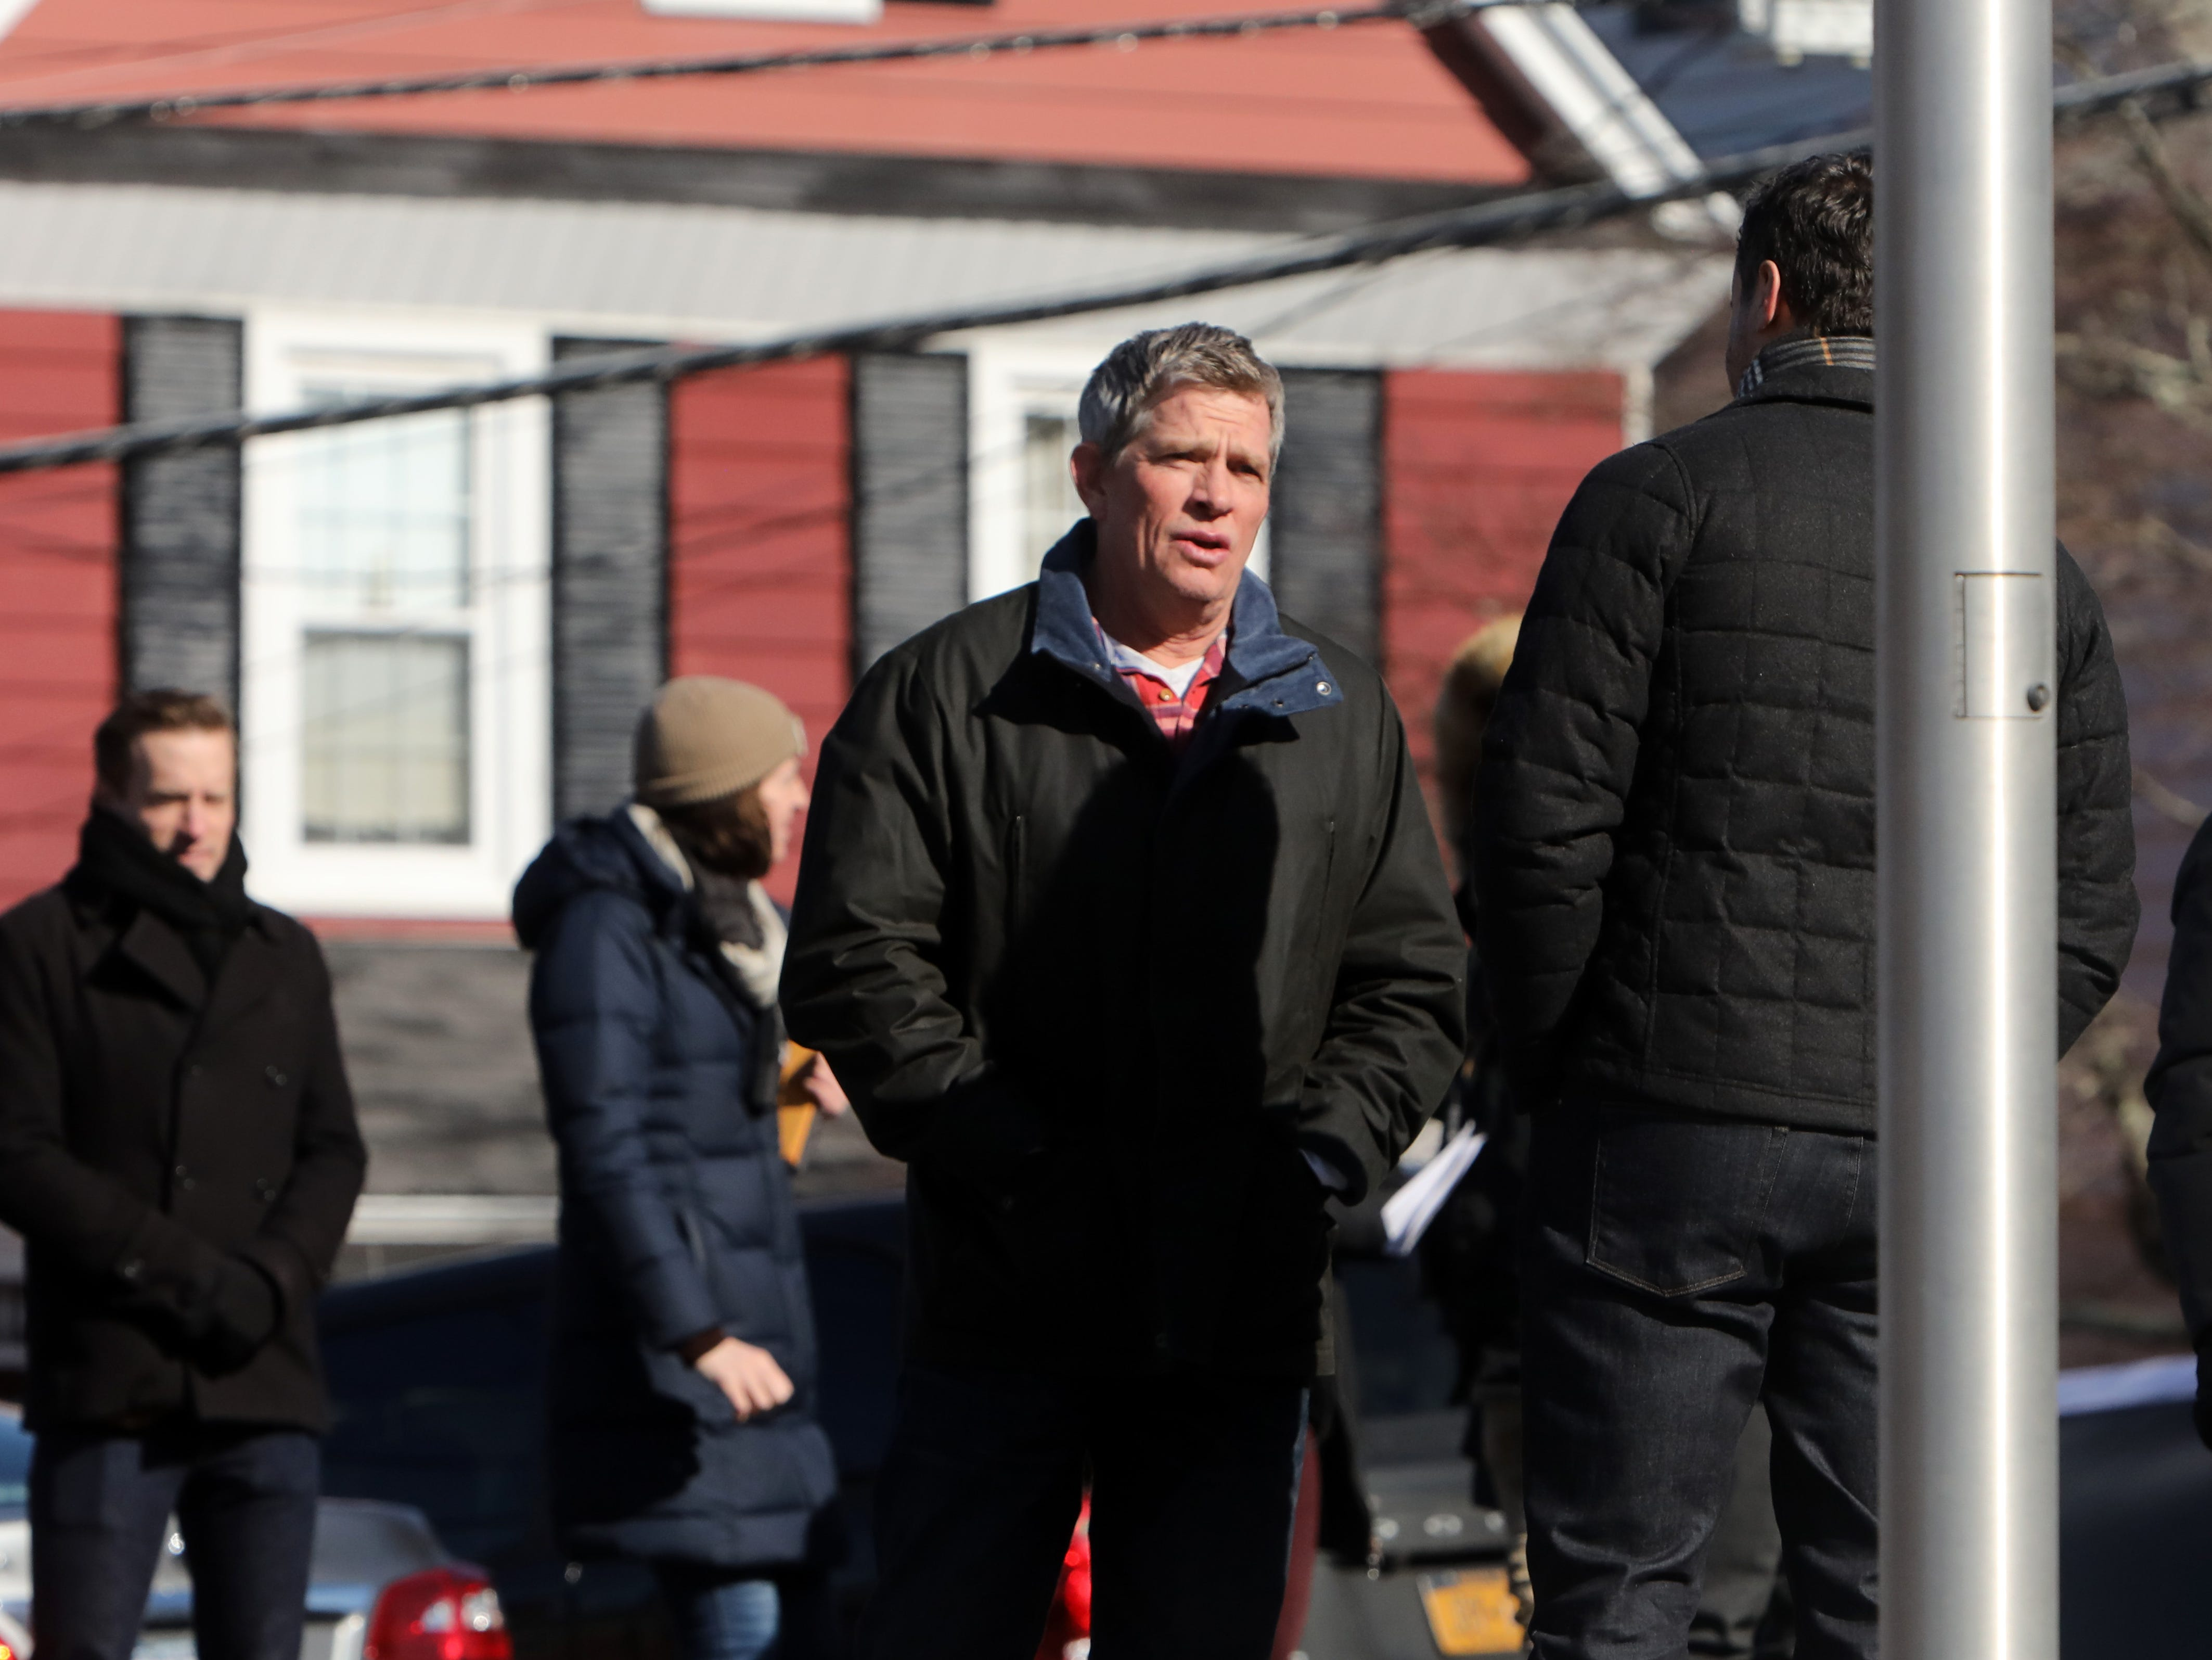 """Thomas Haden Church on set for """"Divorce,"""" an HBO series, Feb. 19, 2019 as the cast and crew shoot a scene near Hastings High School."""